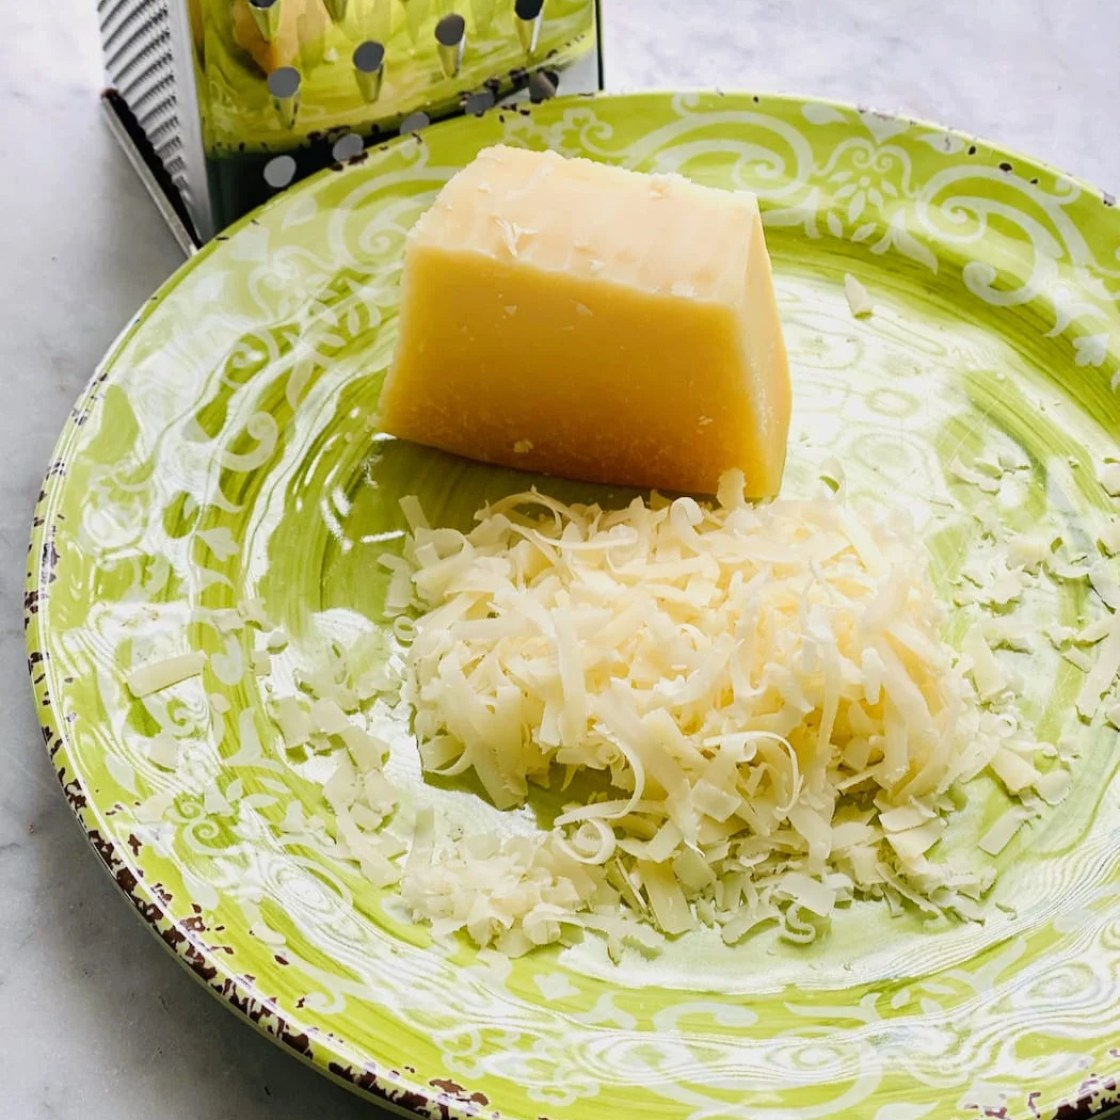 parmesan cheese being shredded by a grater on a green plate